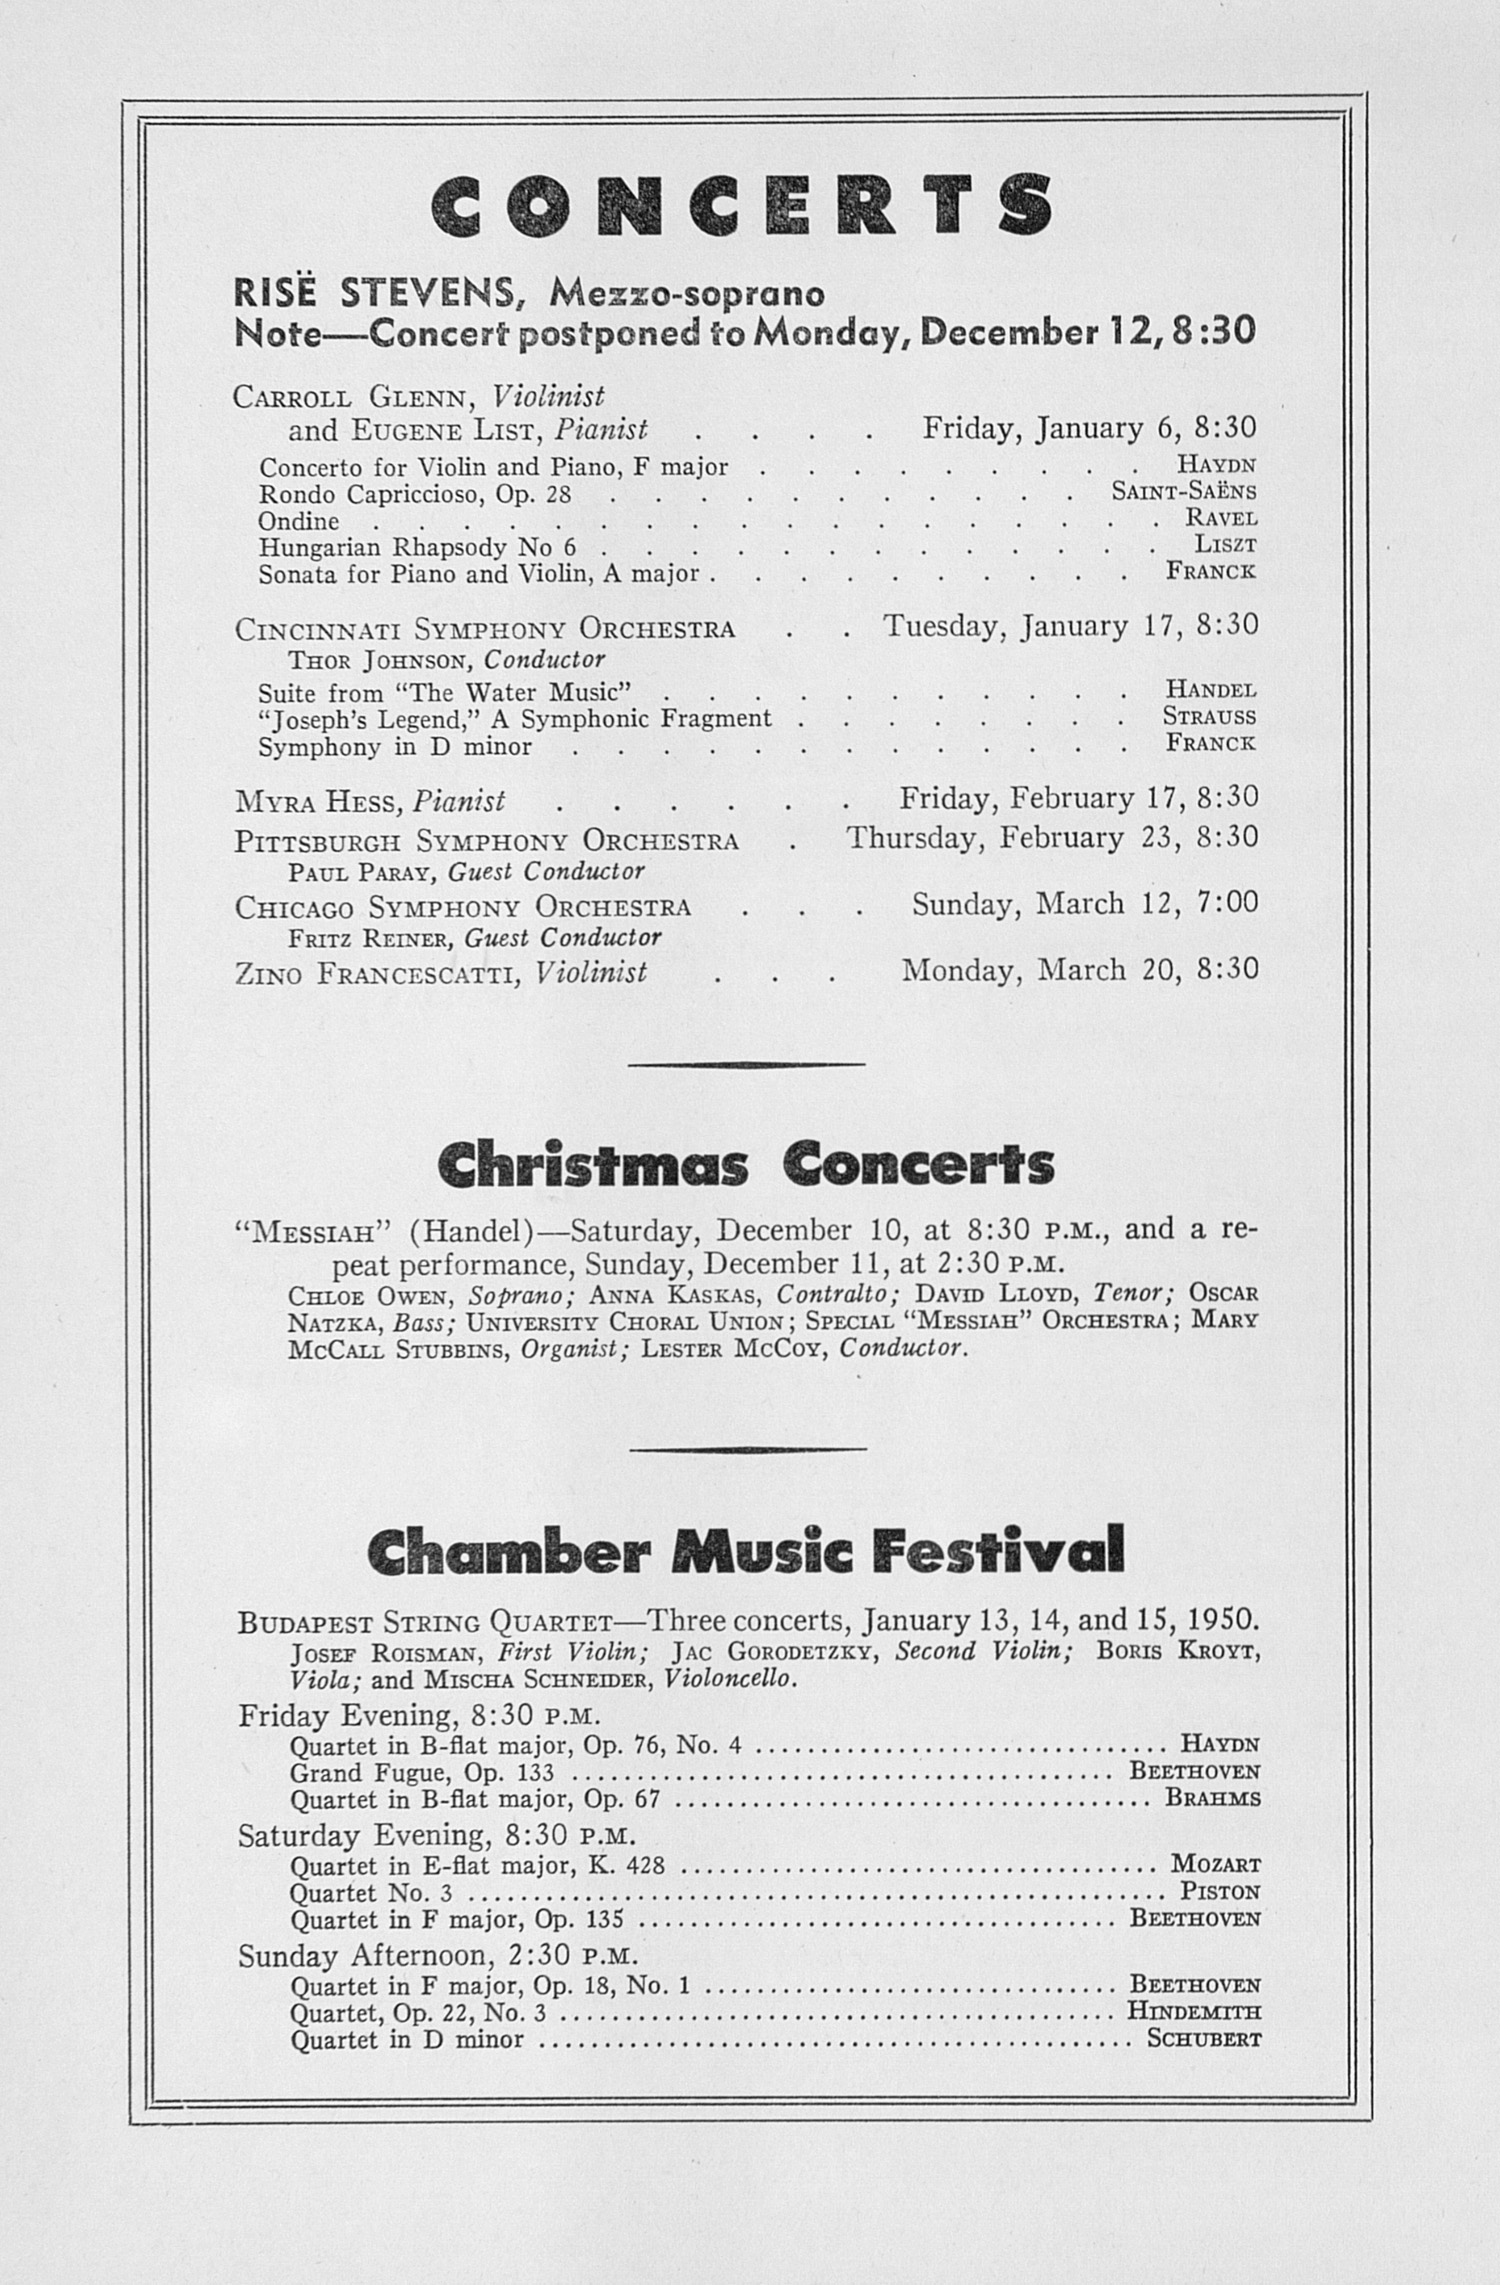 UMS Concert Program, November 22, 1949: Fourth Annual Extra Concert Series -- Tossy Spivakovsky image